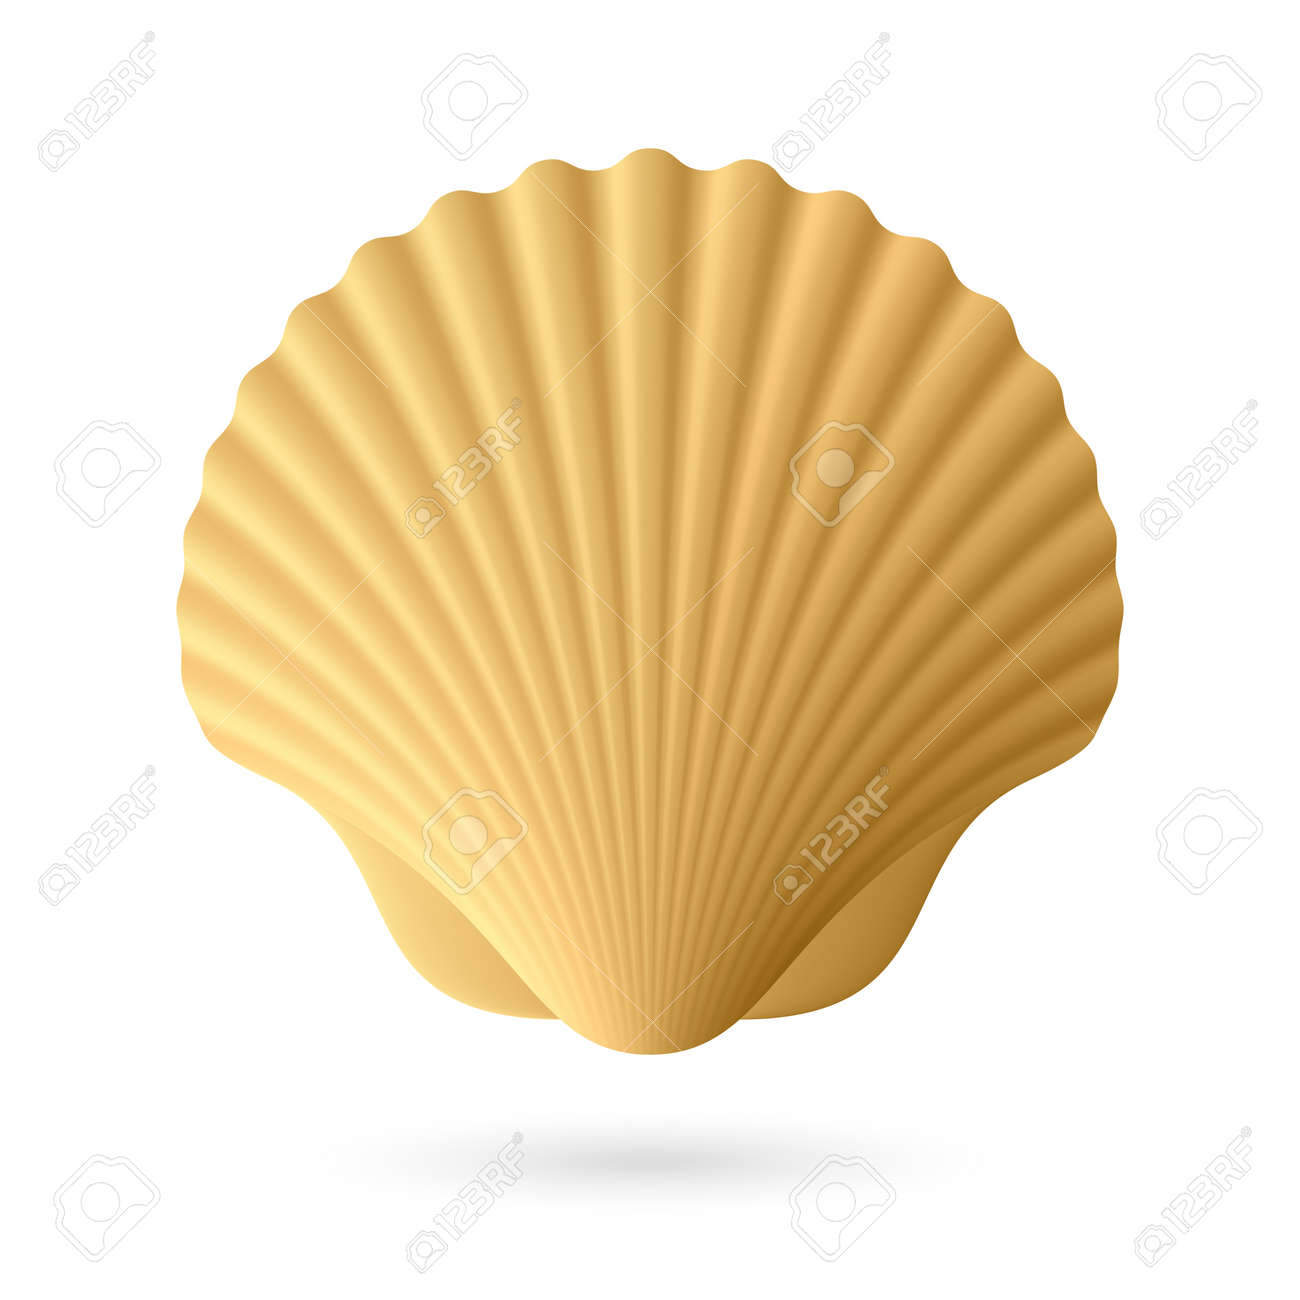 Scallop seashell royalty free cliparts vectors and stock scallop seashell stock vector 16962560 biocorpaavc Image collections